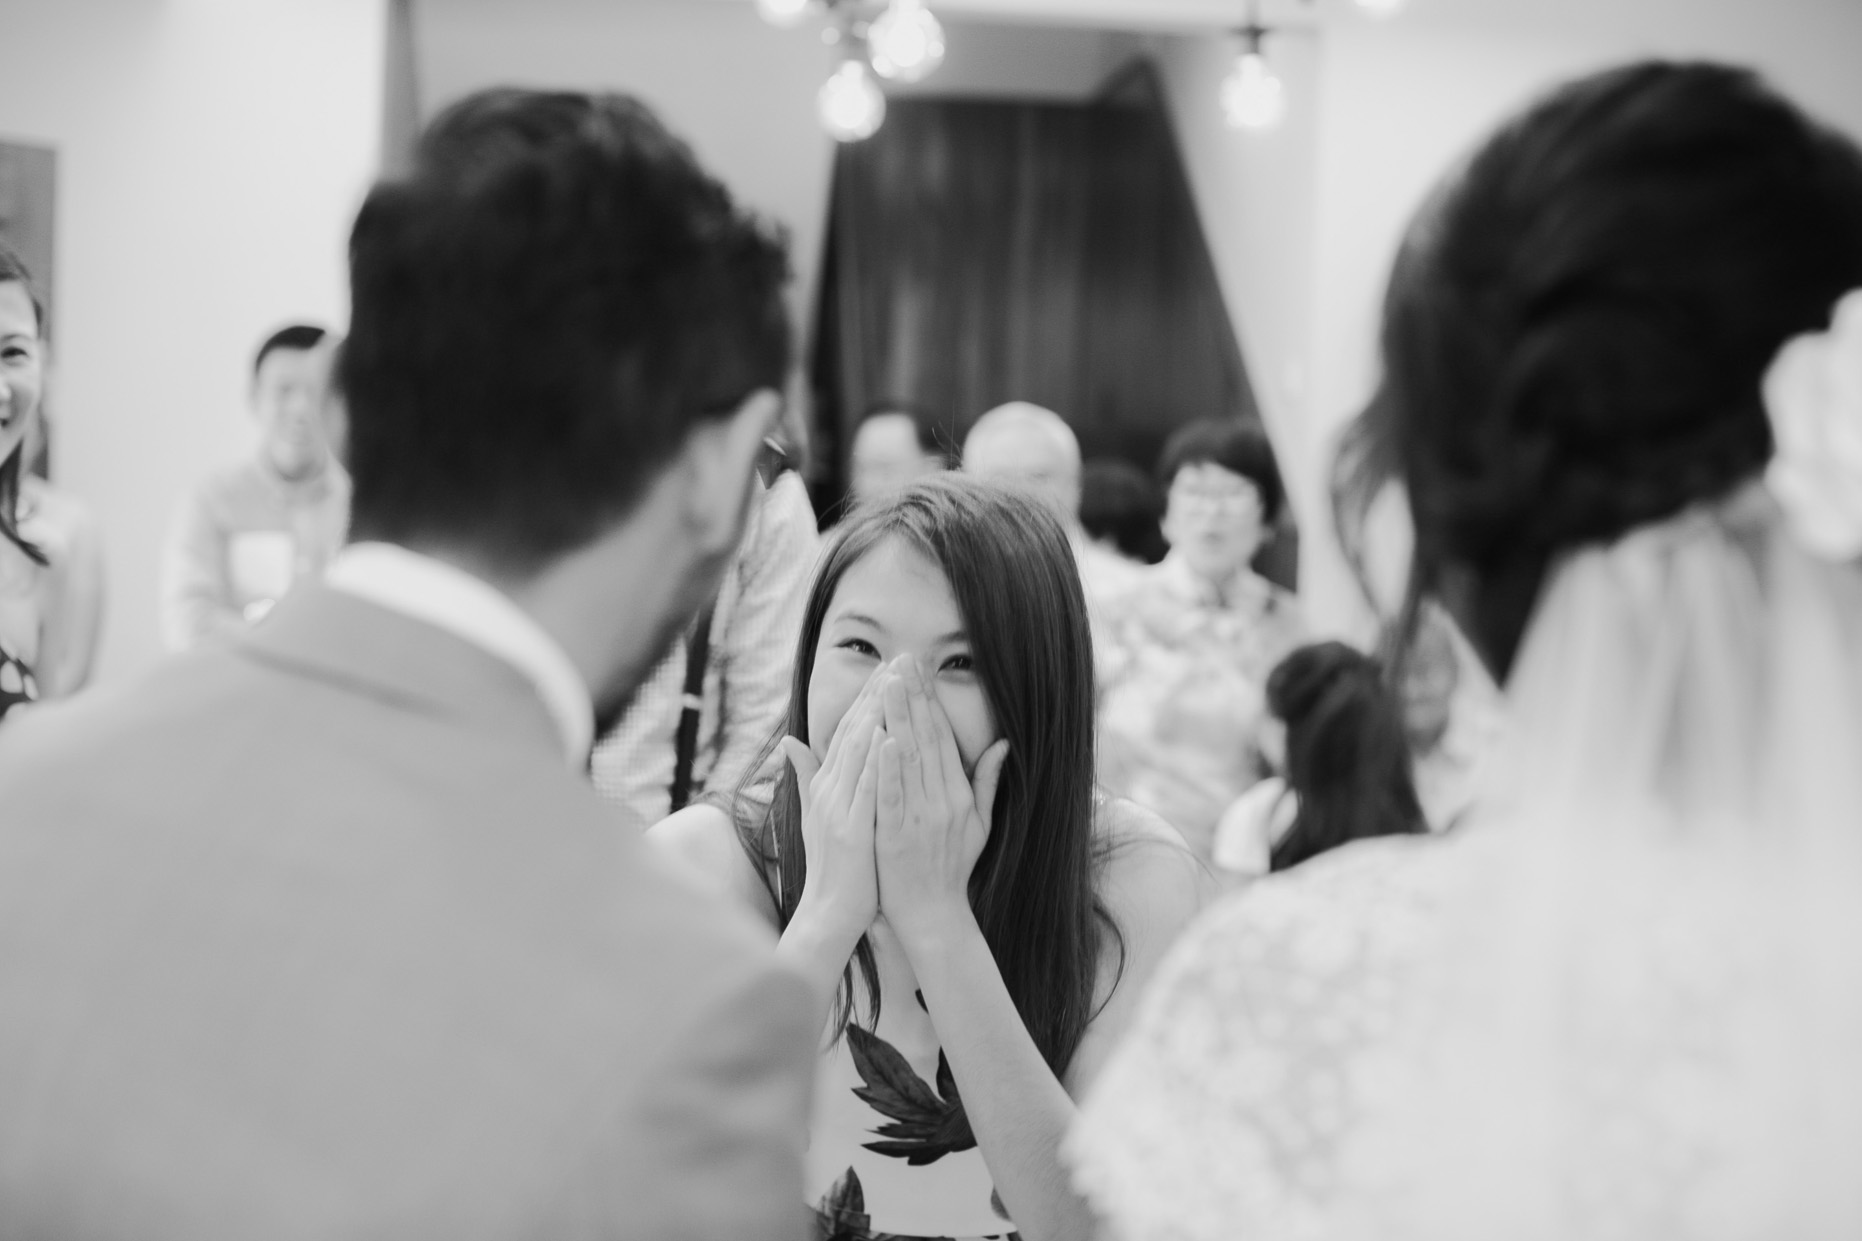 35-hellojanelee-sam grace-malaysia-wedding-day